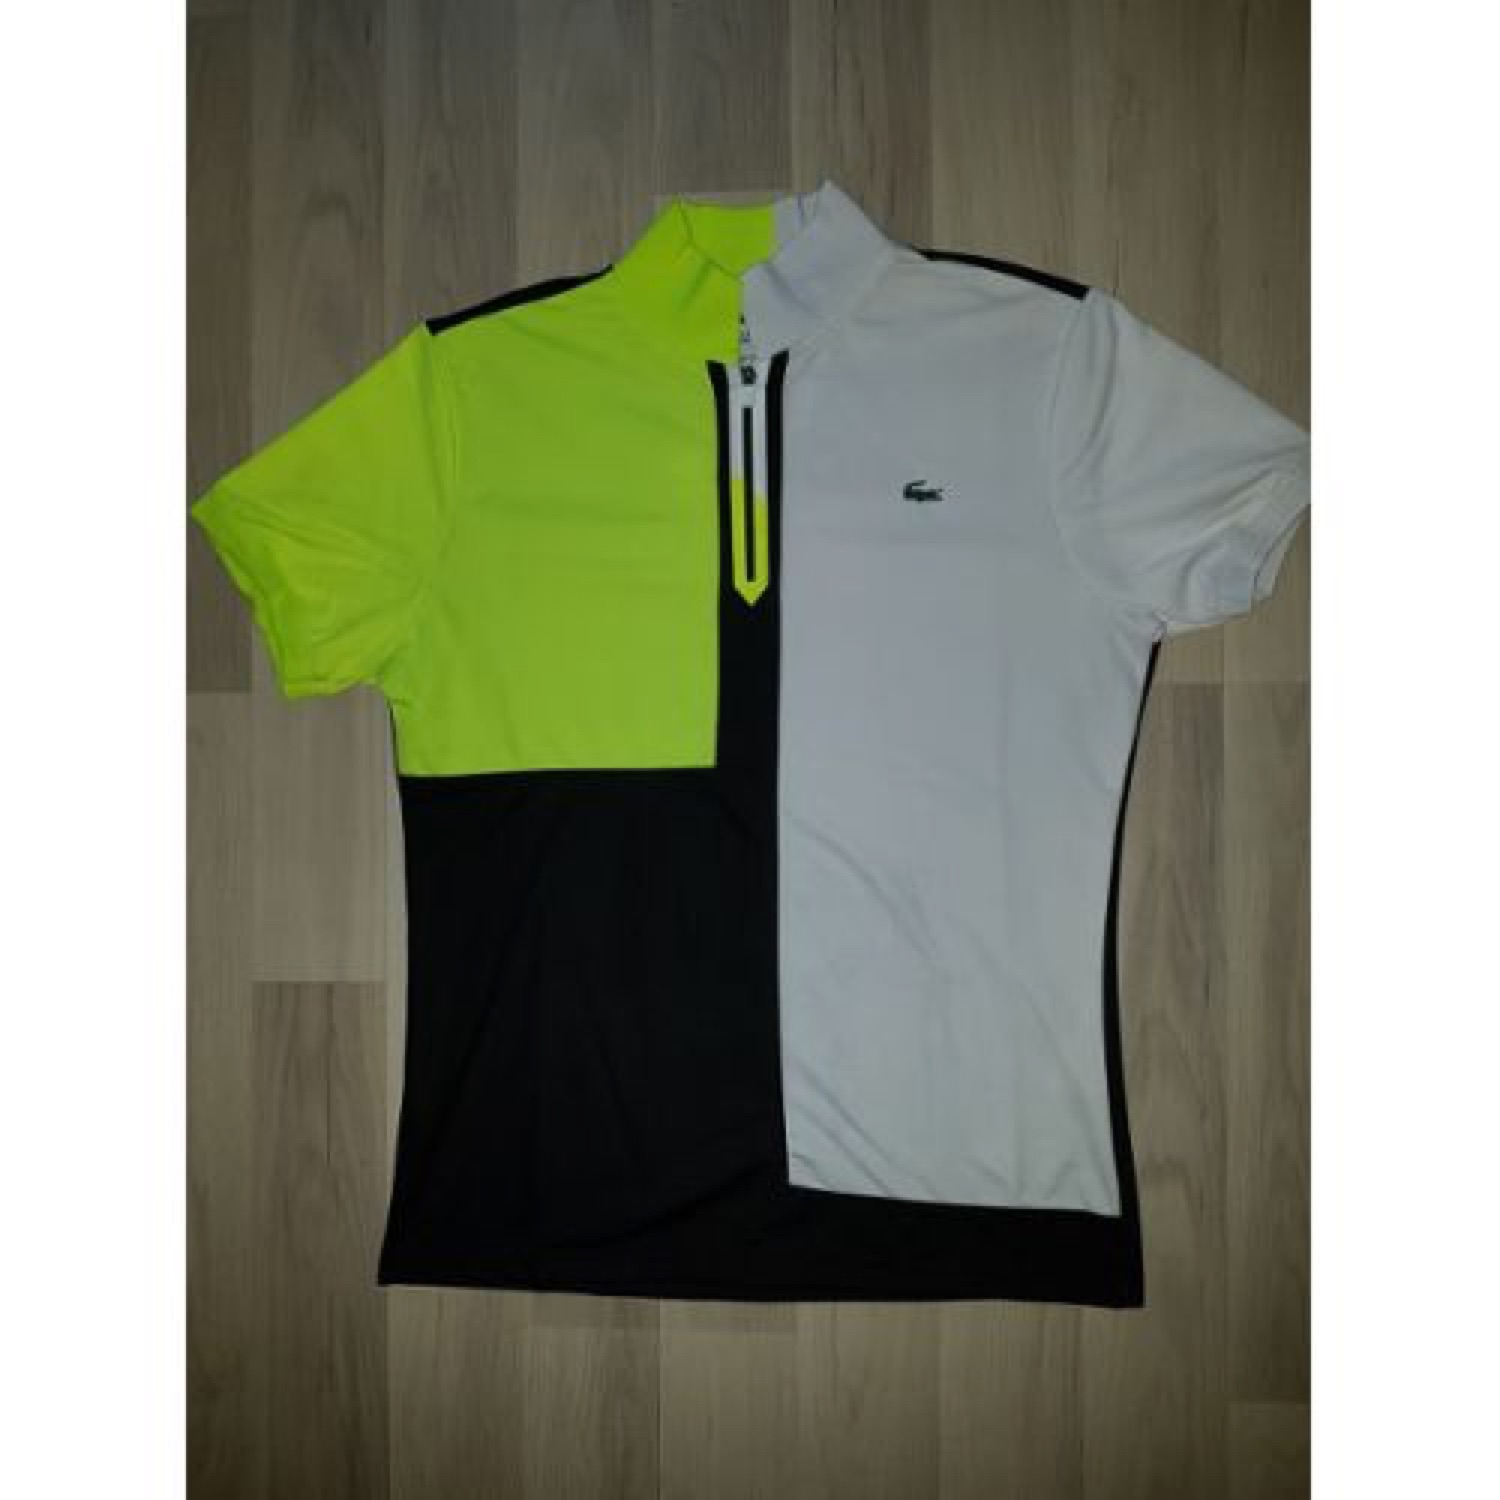 Polo Polo And Black And Lacostewhite Lacostewhite Lacostewhite Black Polo Green Green l1cFKTJ